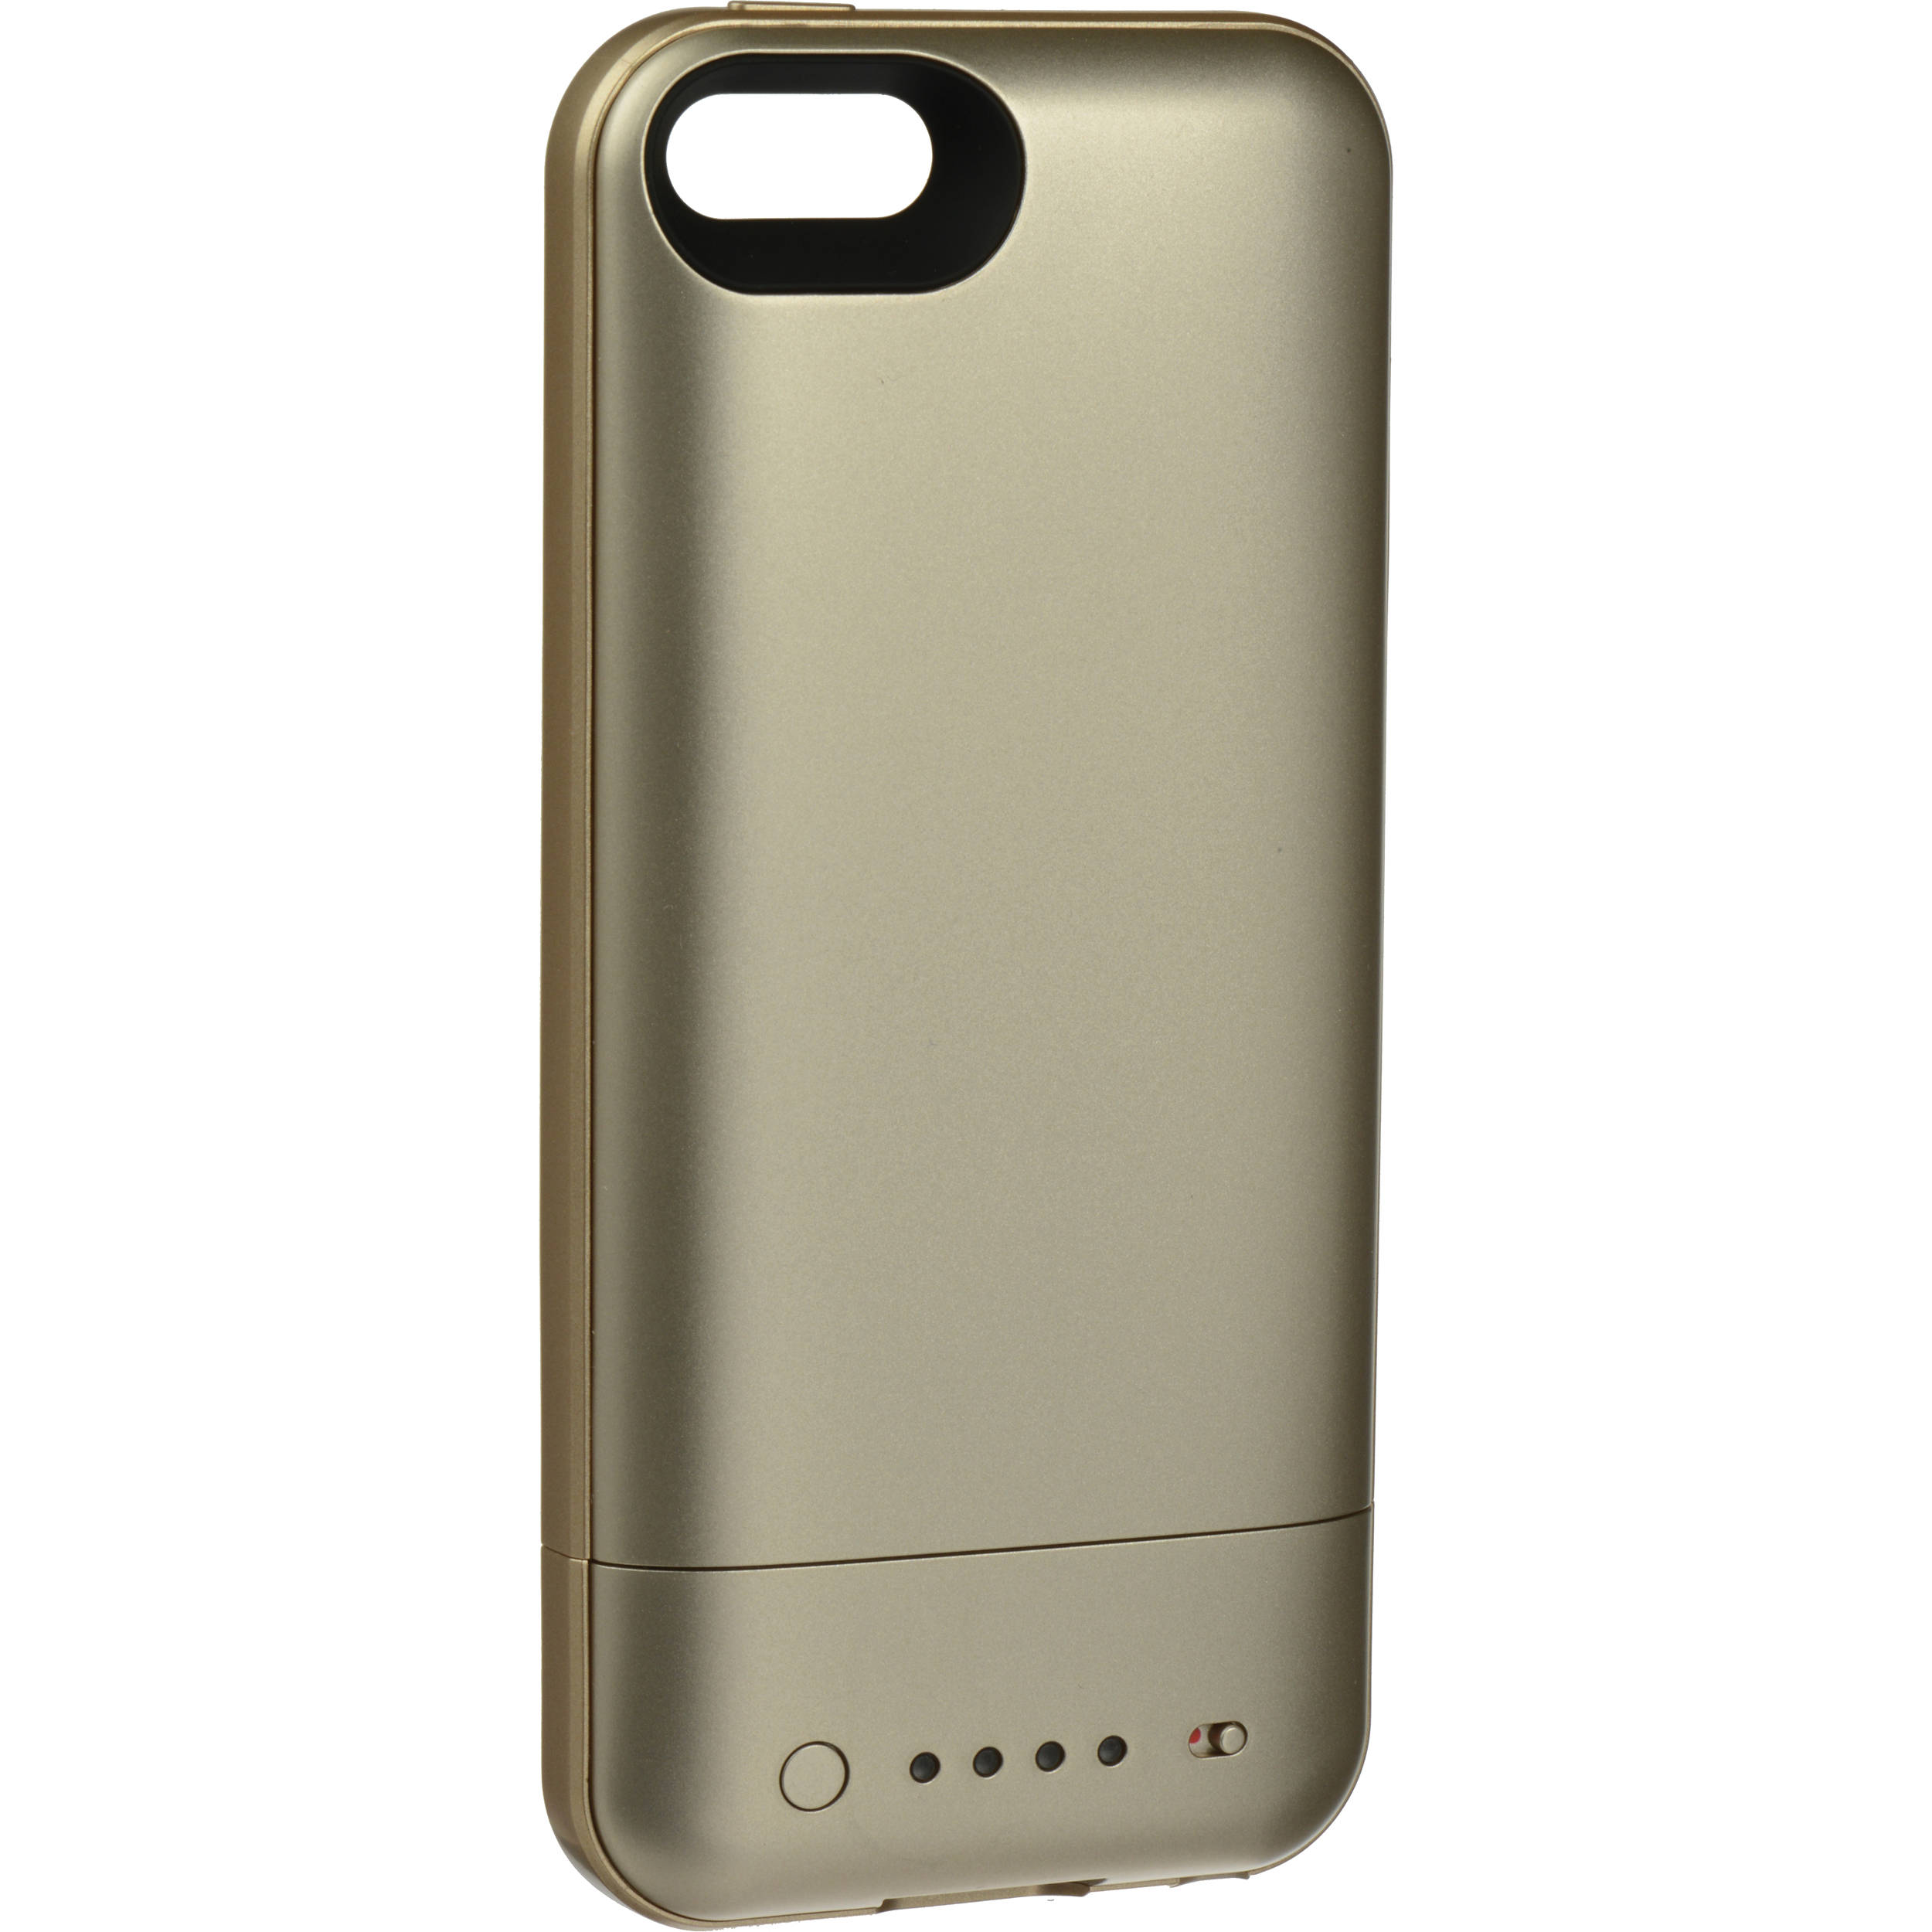 mophie juice pack air for iPhone 5/5s/SE (Gold)